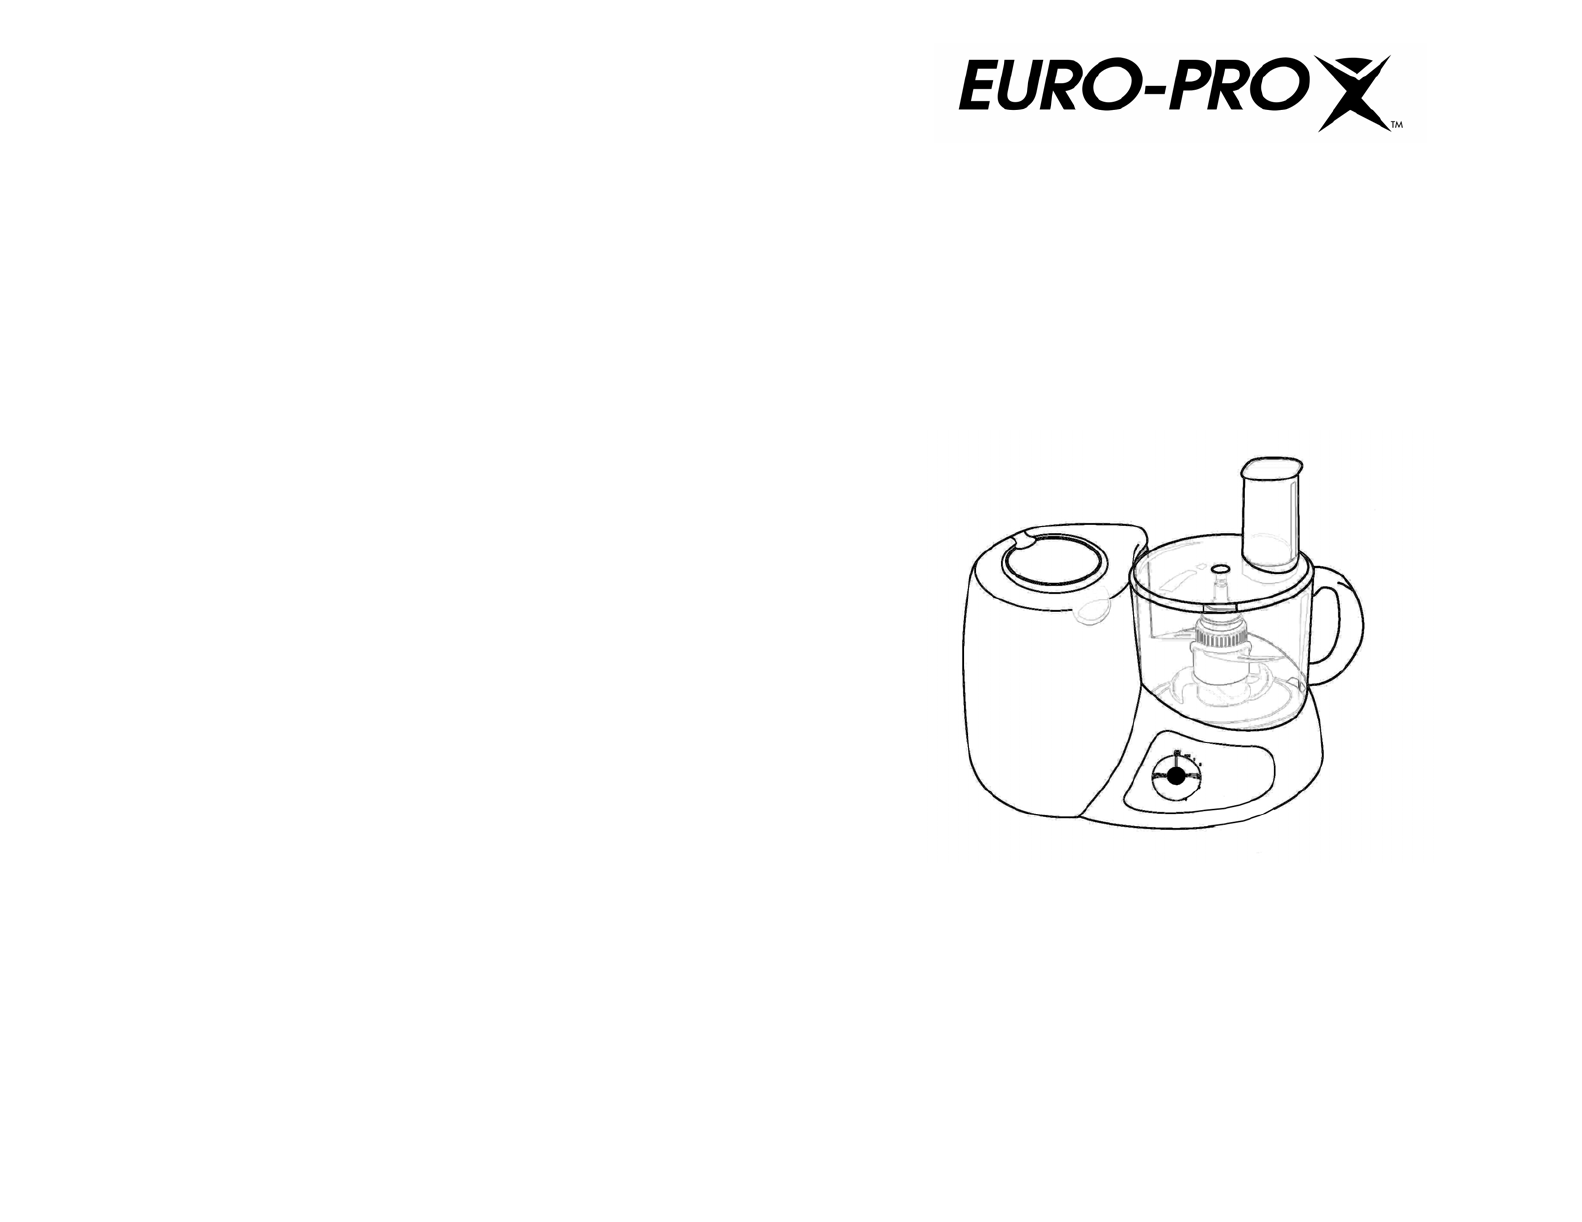 euro pro blender ep91 user guide manualsonline com rh kitchen manualsonline com shark euro-pro x user guide Euro-Pro Ironing Board Cover 18X57